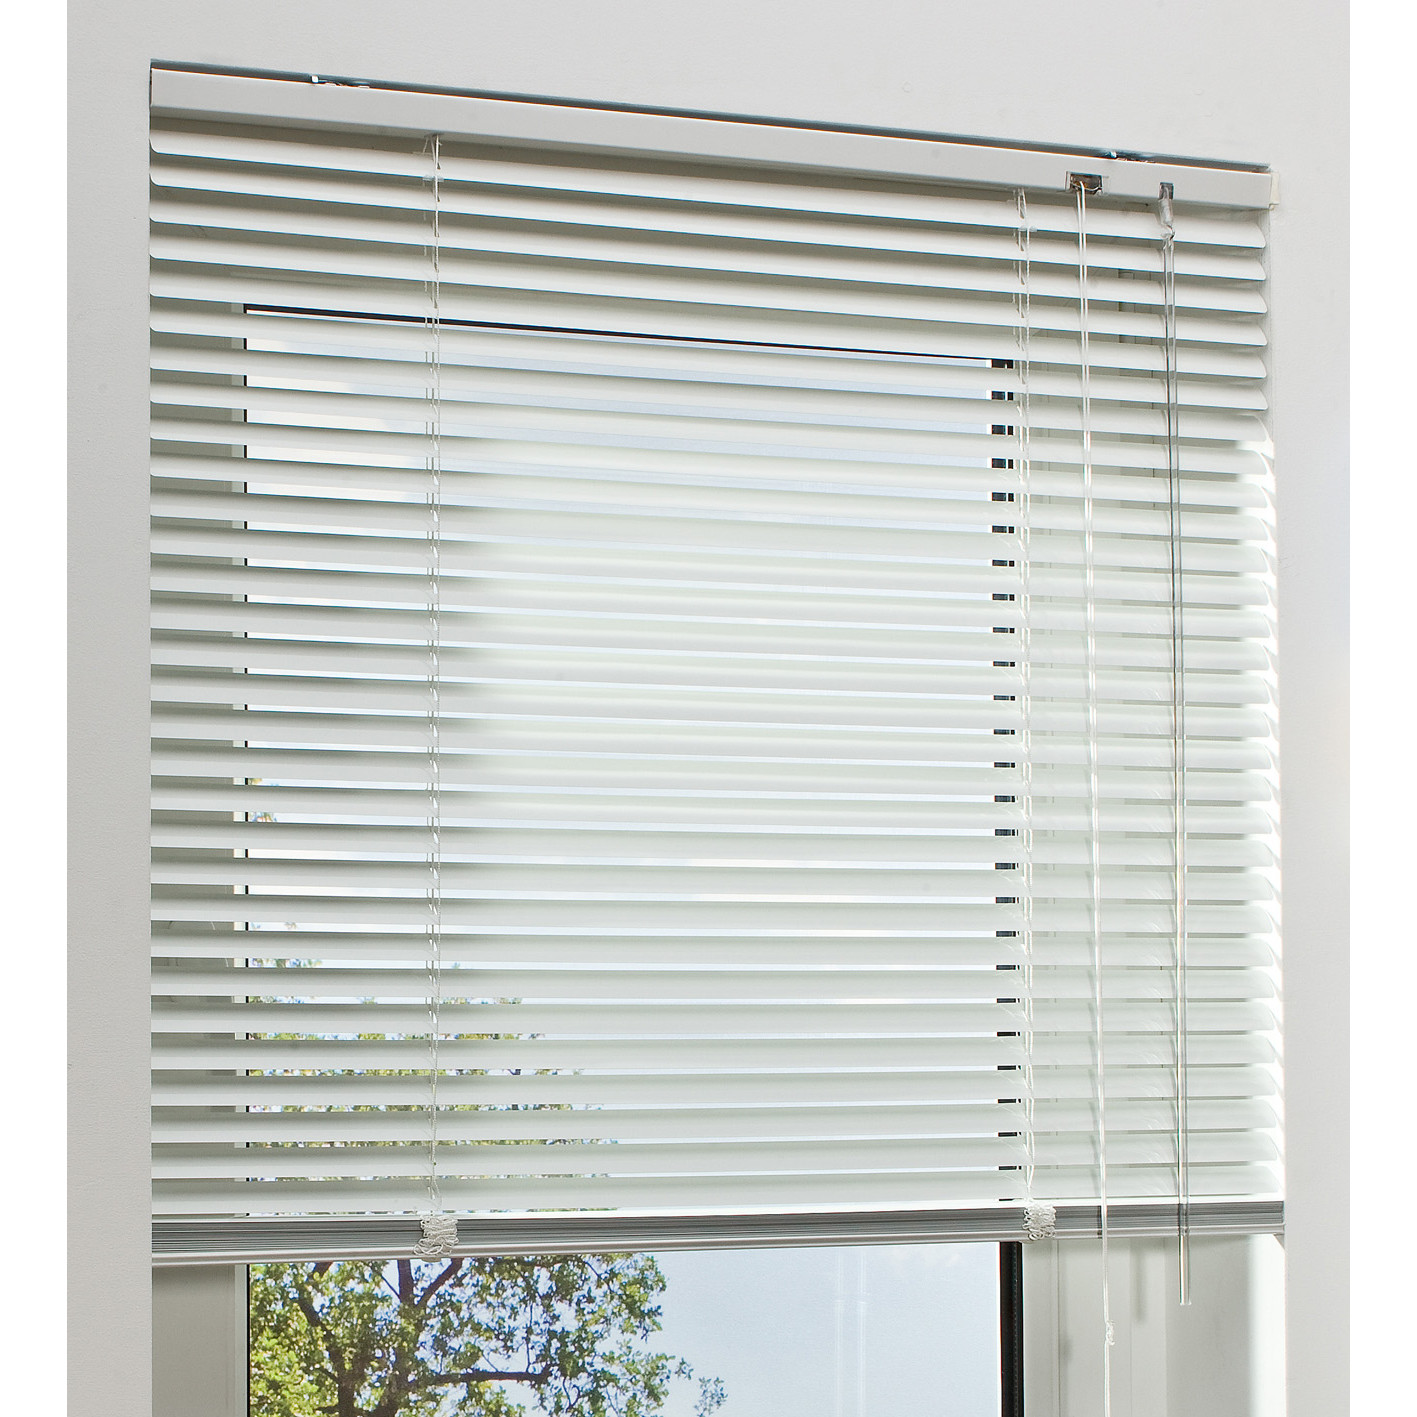 Menards Website | Nearest Menards | Menards Window Blinds